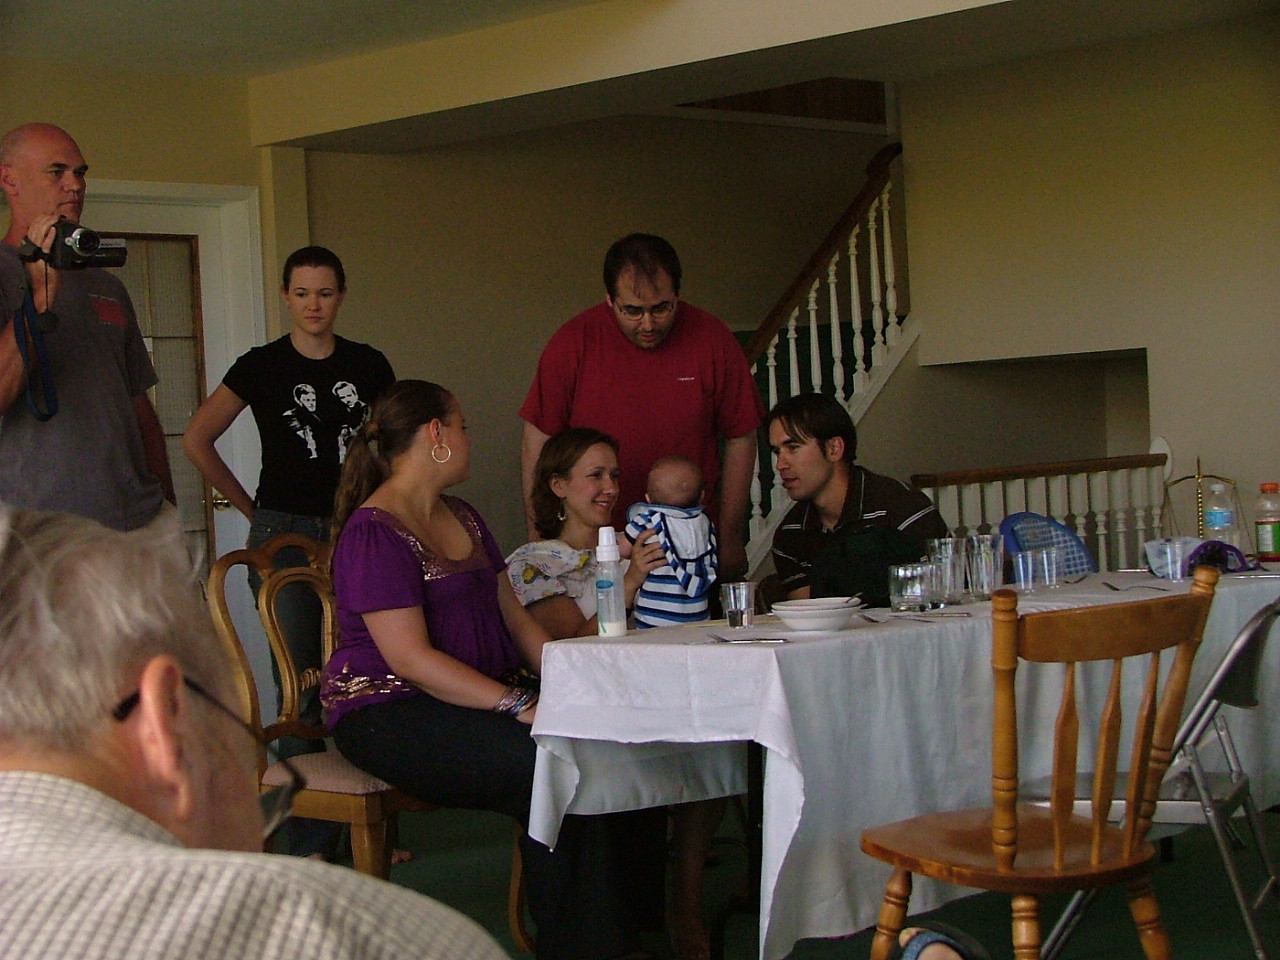 Kelly (camcorder), Amanda (black shirt), Paul (red), Jordan (purple), Erica (with baby Liam), and Scott (brown stripes)